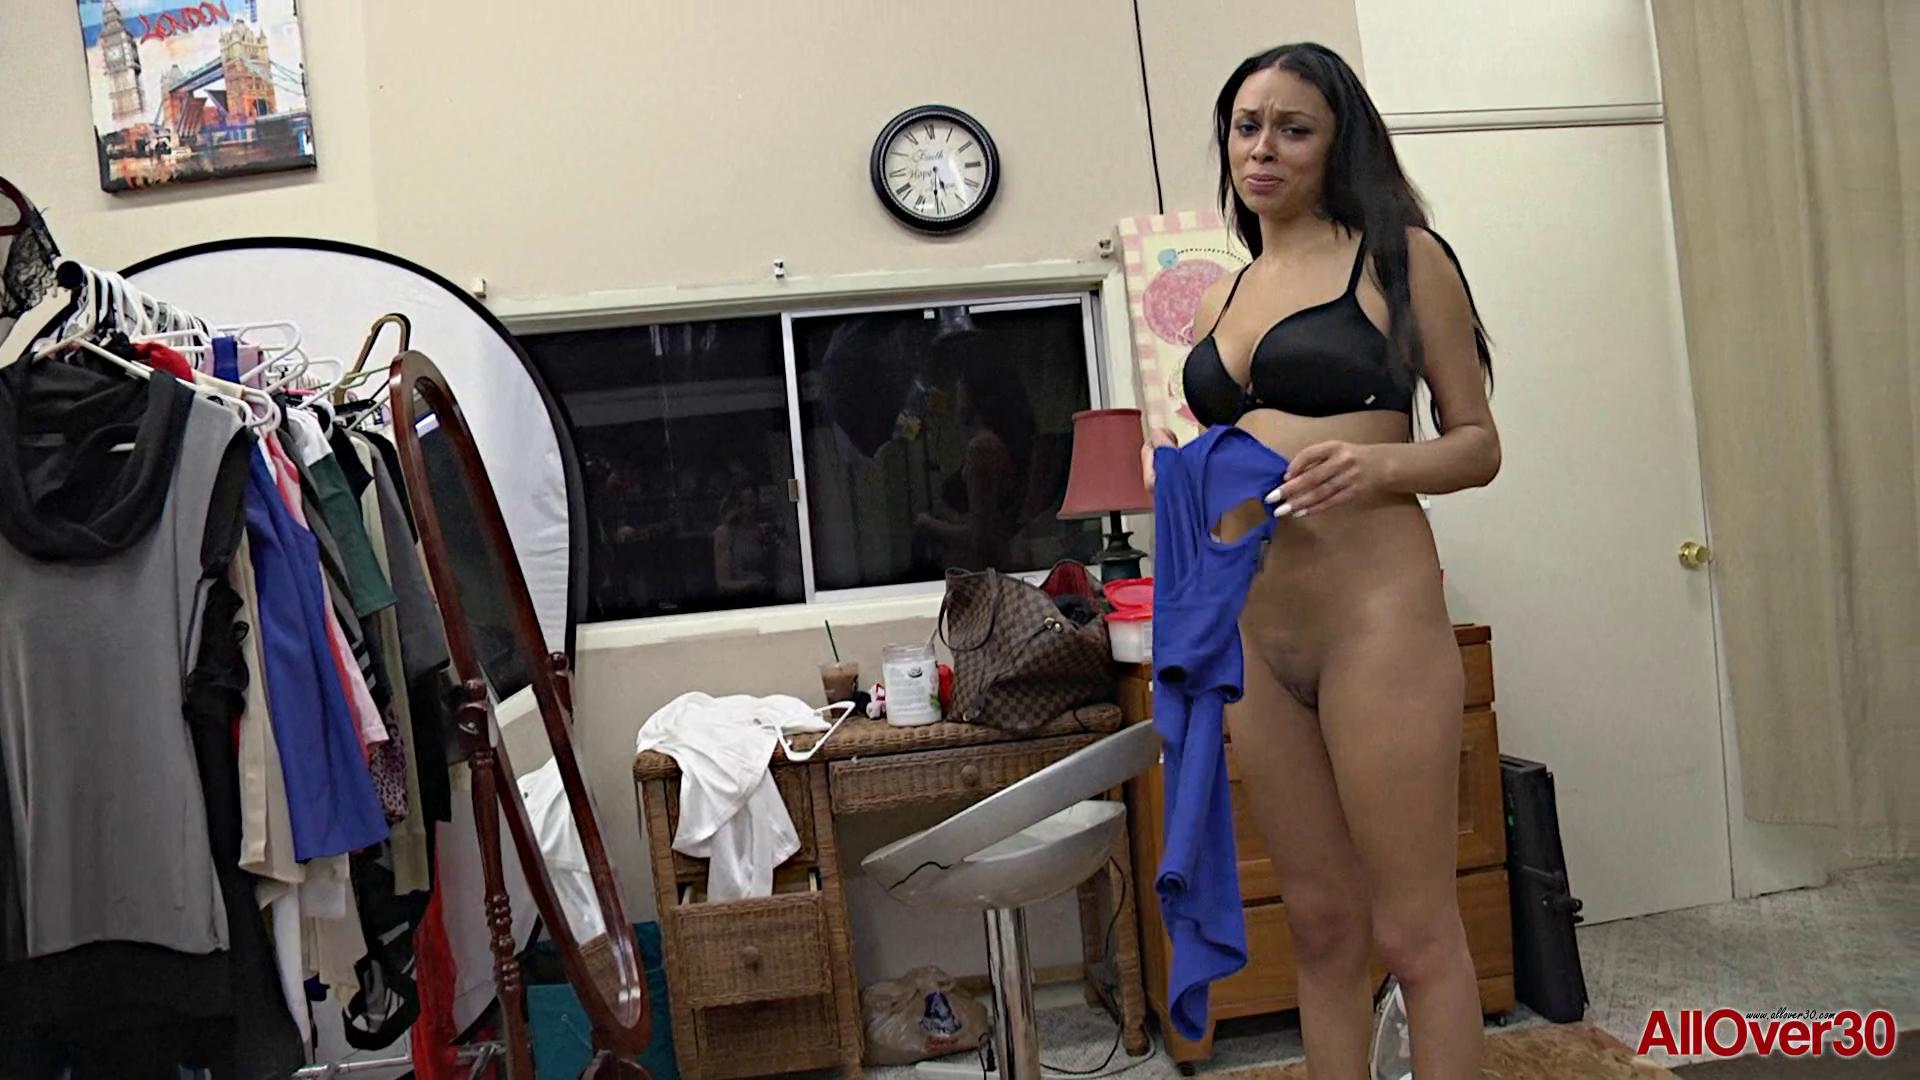 AllOver30 – Bethany Benz